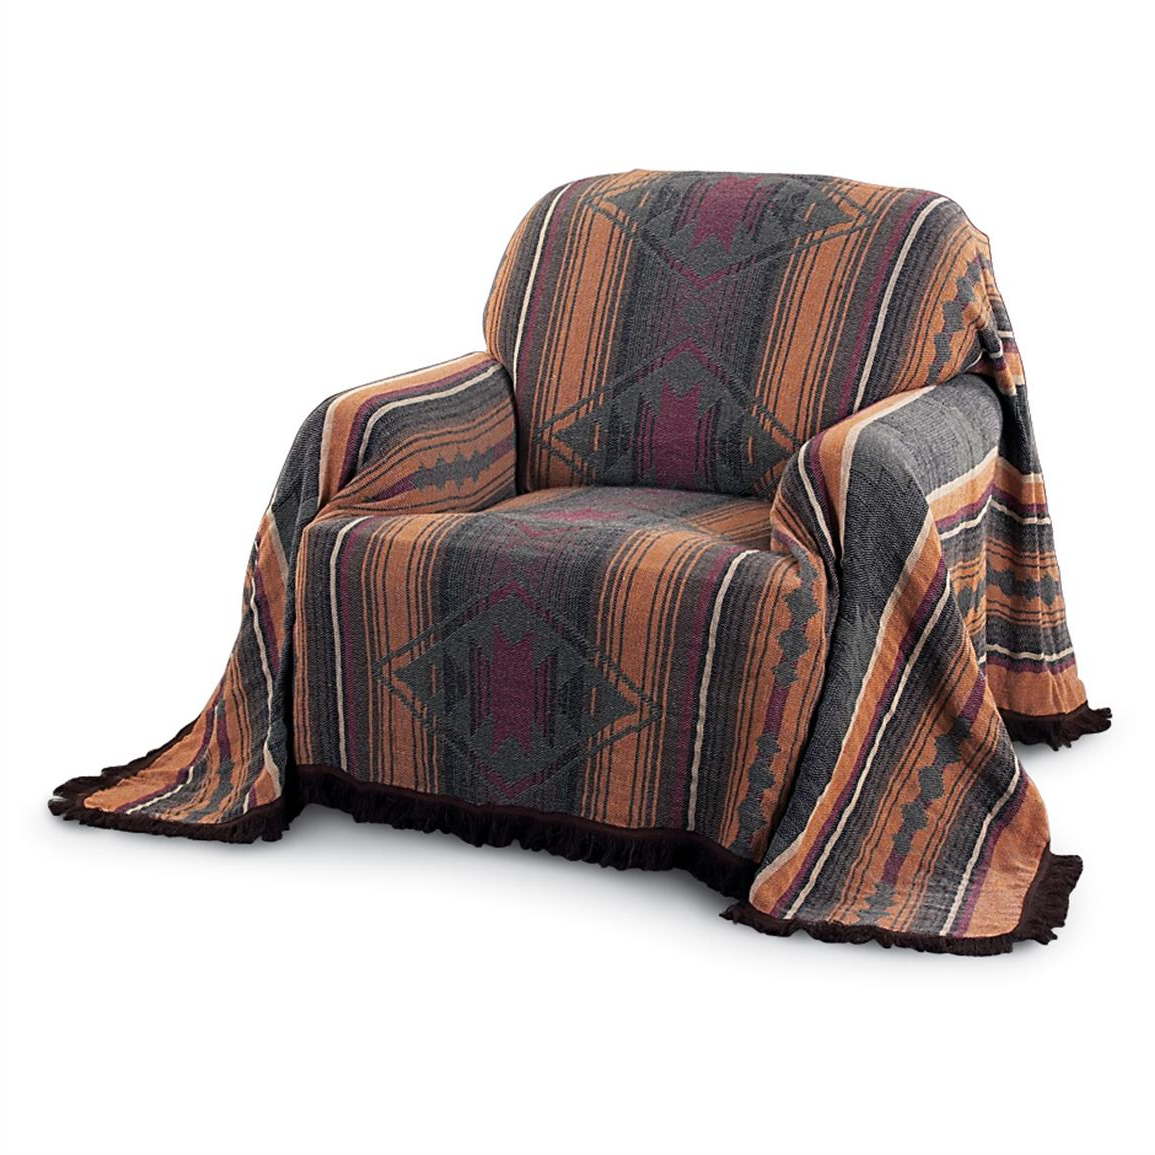 Favorite Throws For Sofas And Chairs Intended For Canyon Southwest Furniture Throw – 125722, Blankets & Throws At (View 8 of 20)